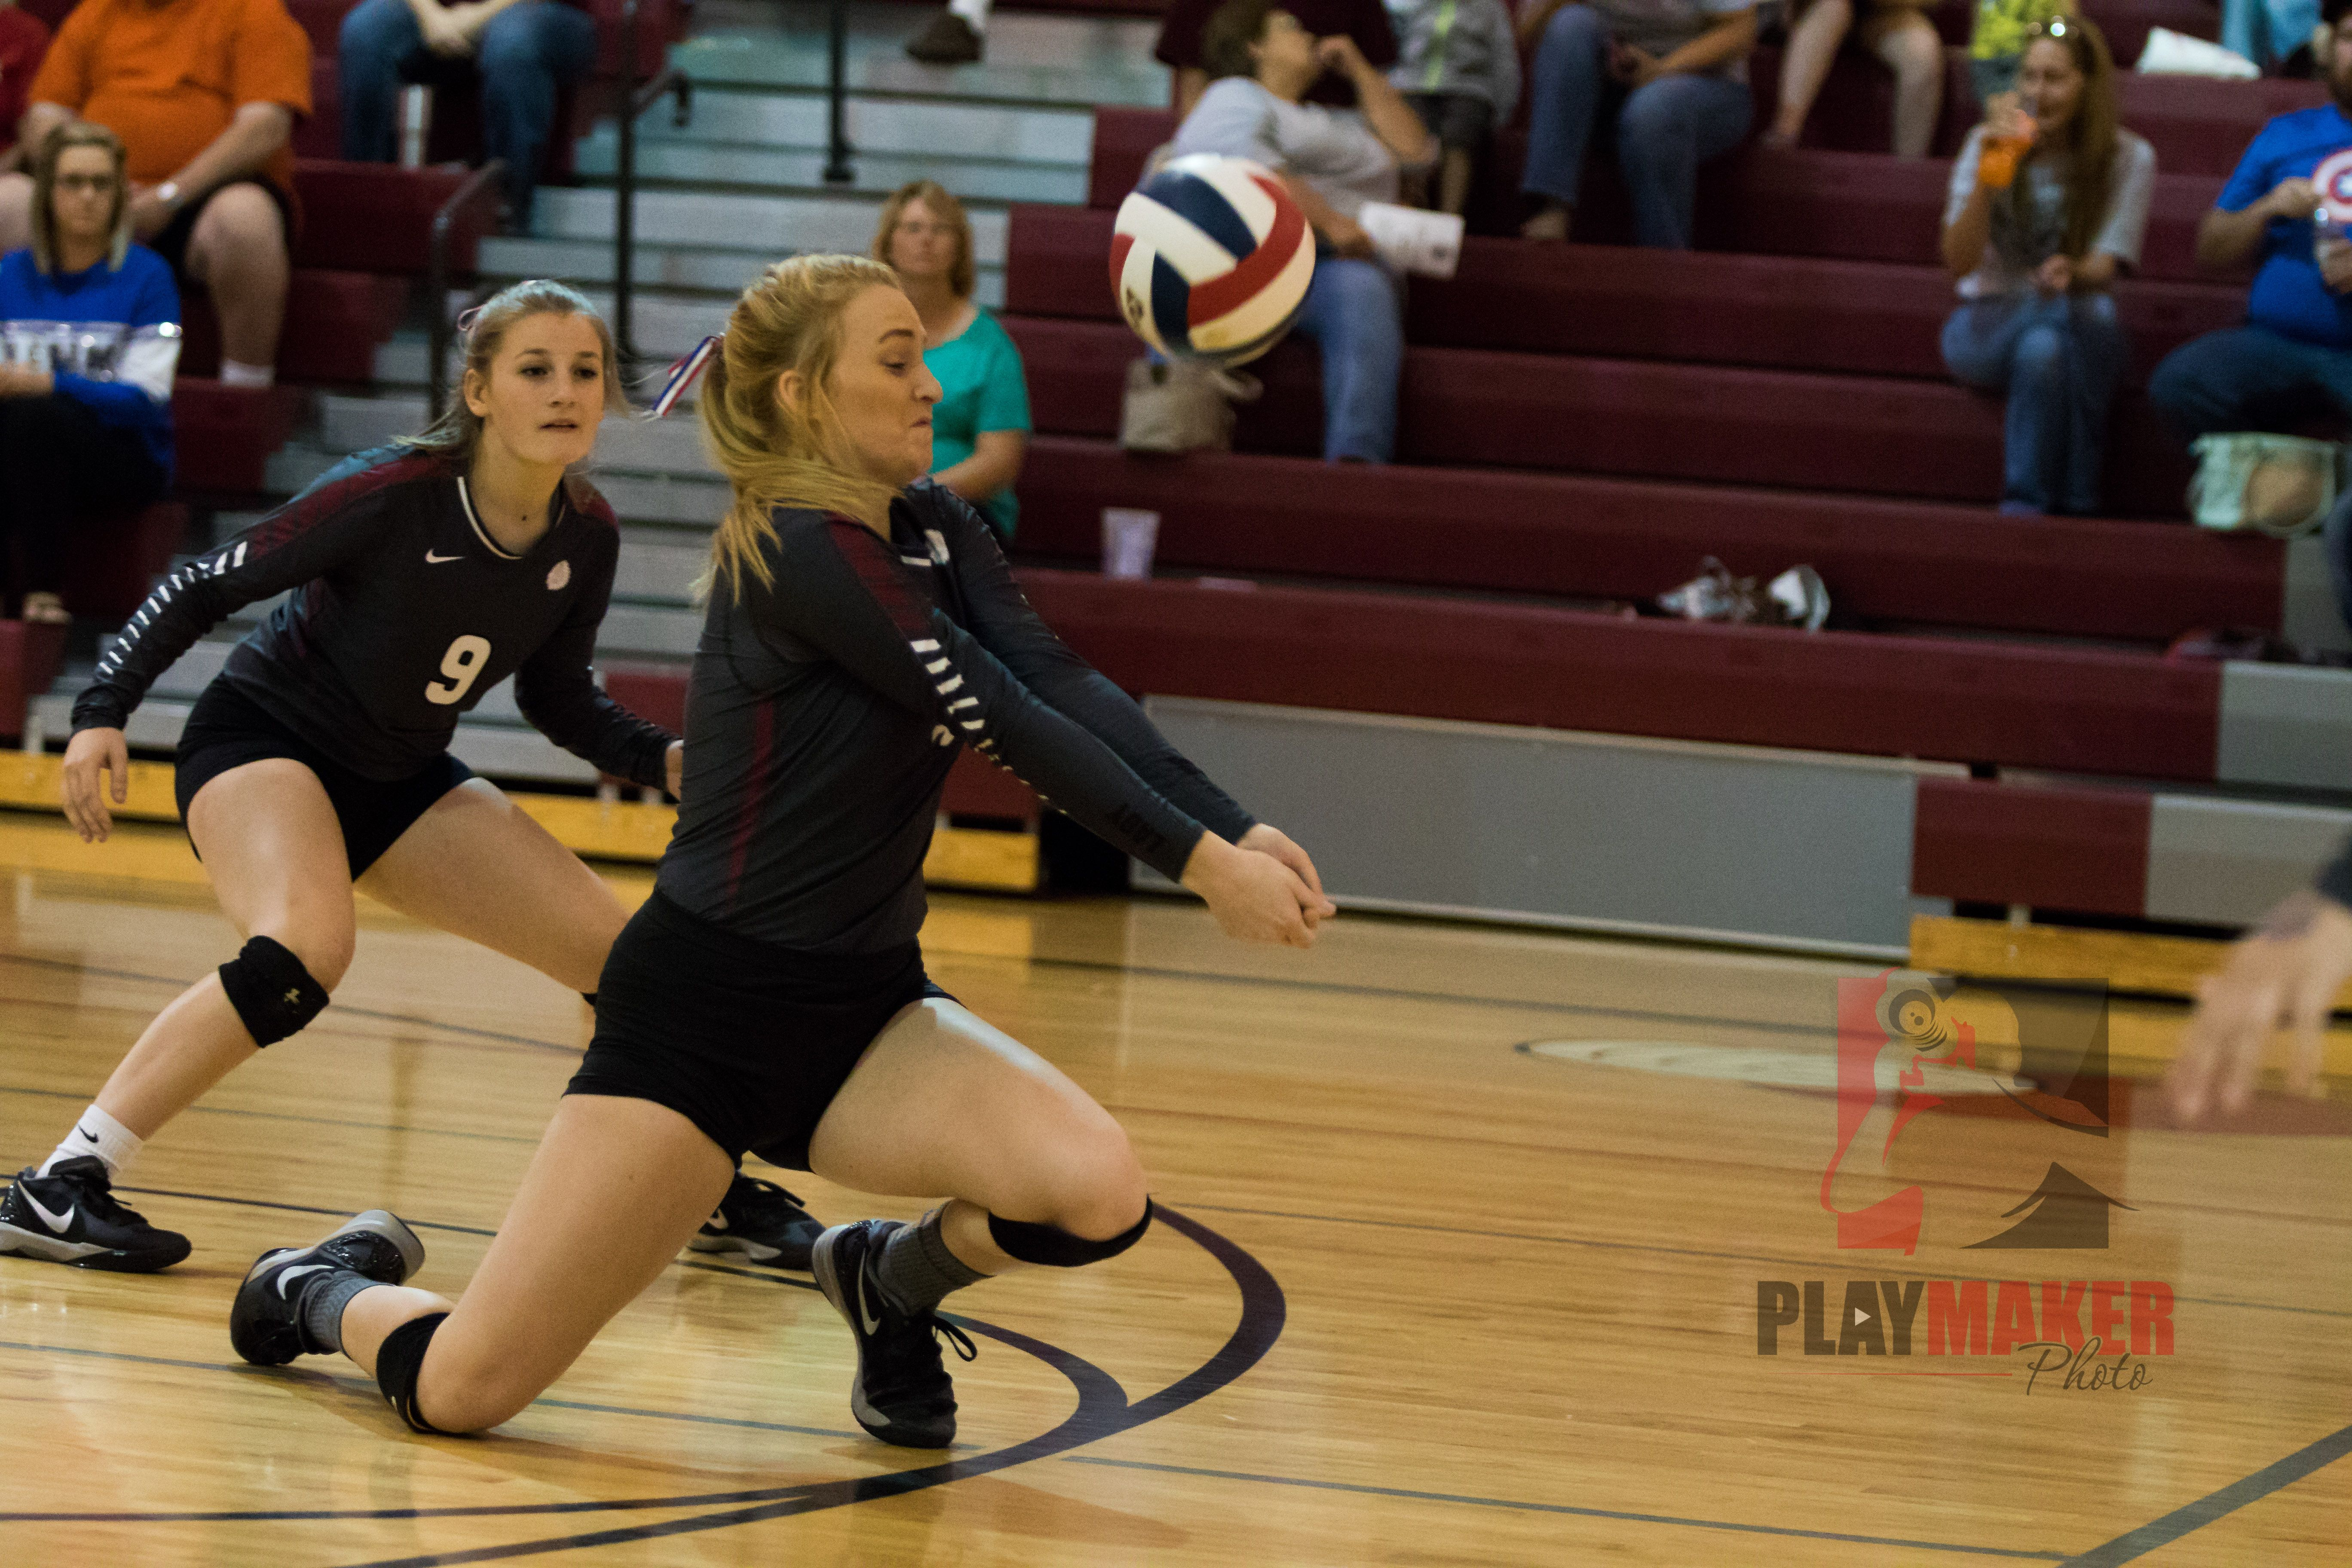 2016 09 26 Bismarck High School Girls Jv Volleyball Http Www Playmakerphoto Com 2016 09 26 Bismarck Jv